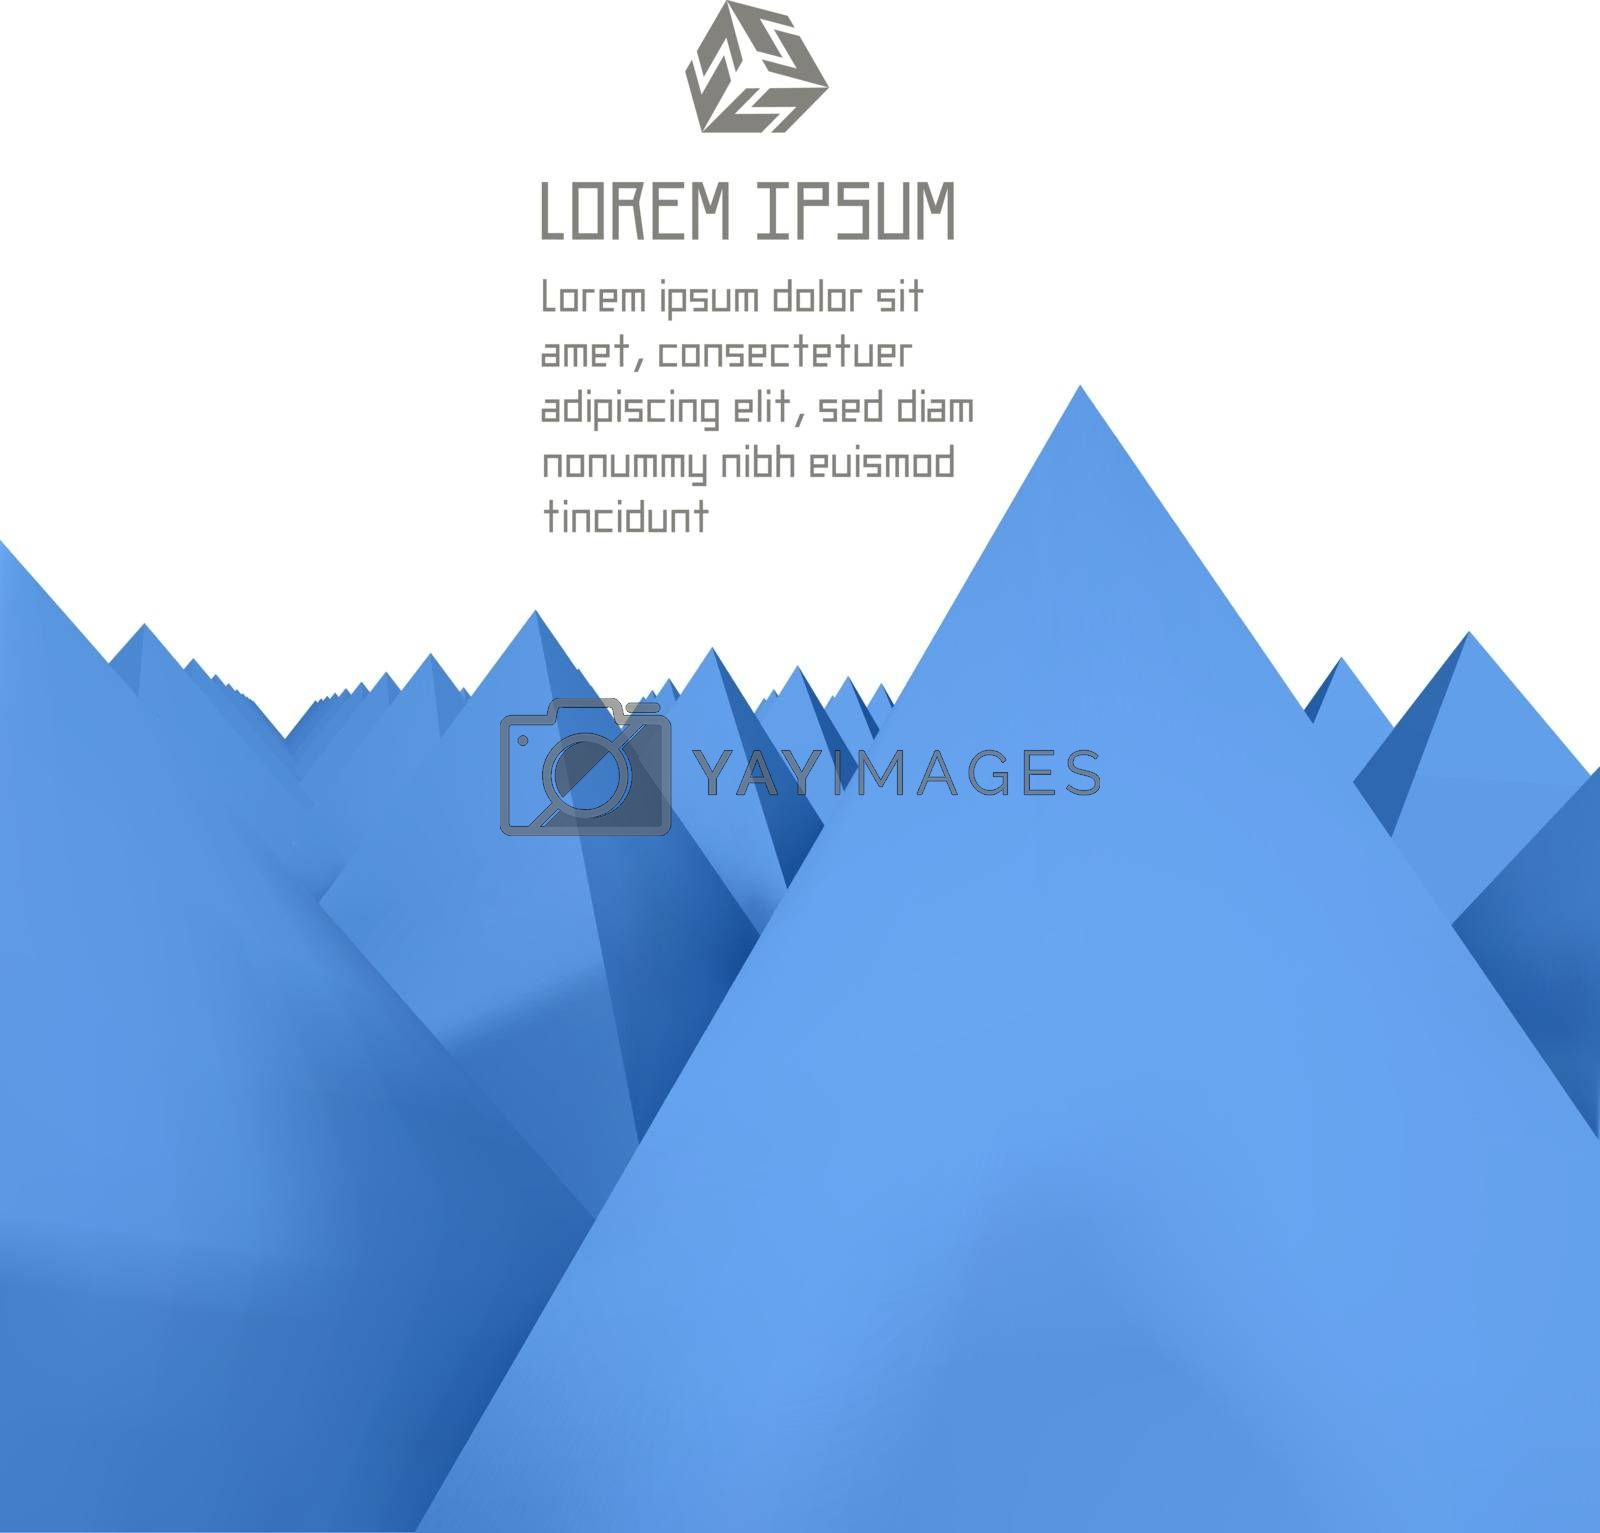 3D abstract illustration. 3D background.